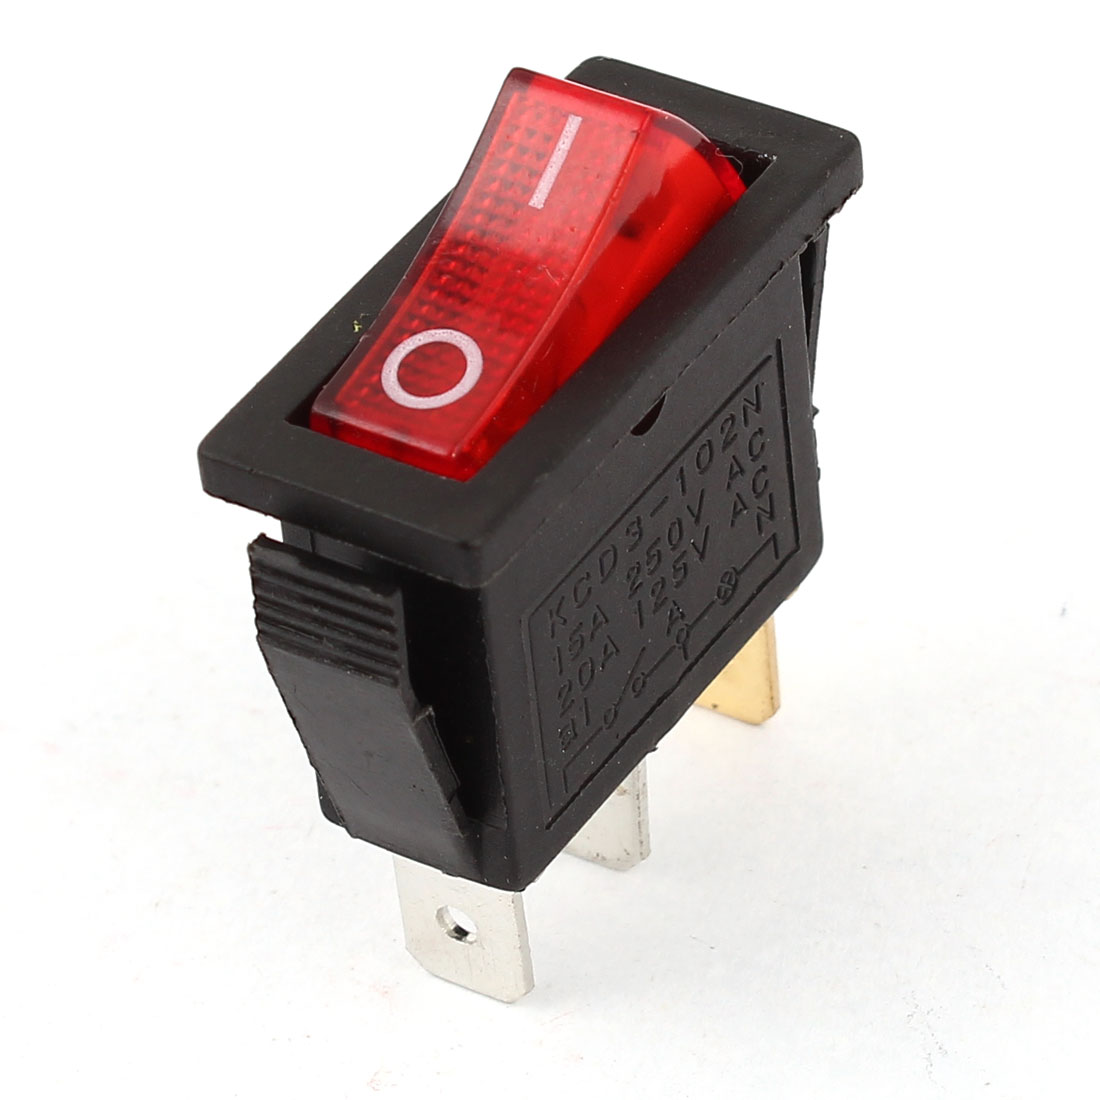 KCD3-102N Red Light SPST ON/OFF Rocker Switch AC 15A/250V 20A/125V